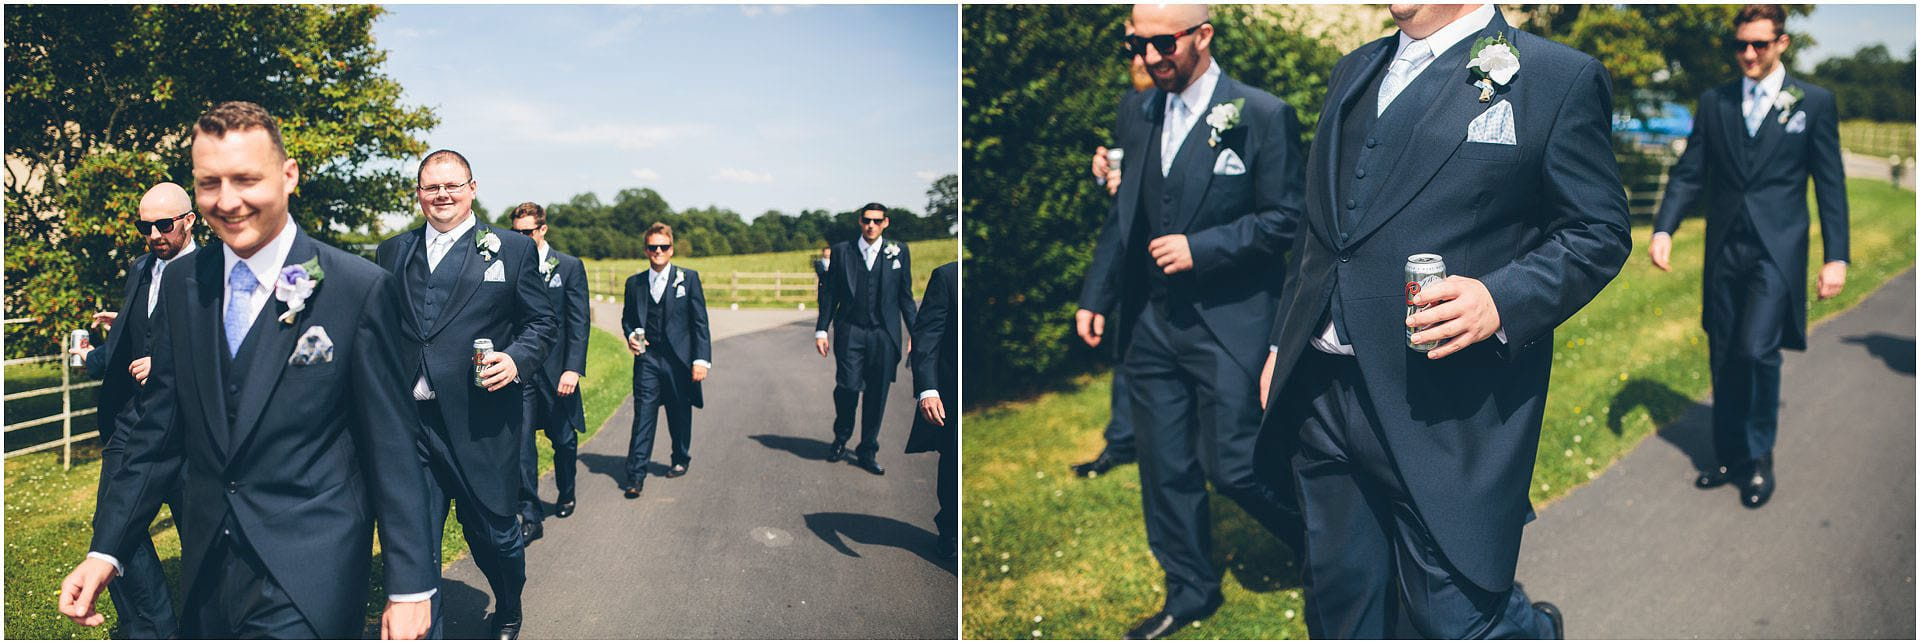 Combermere_Abbey_Wedding_Photography_0025